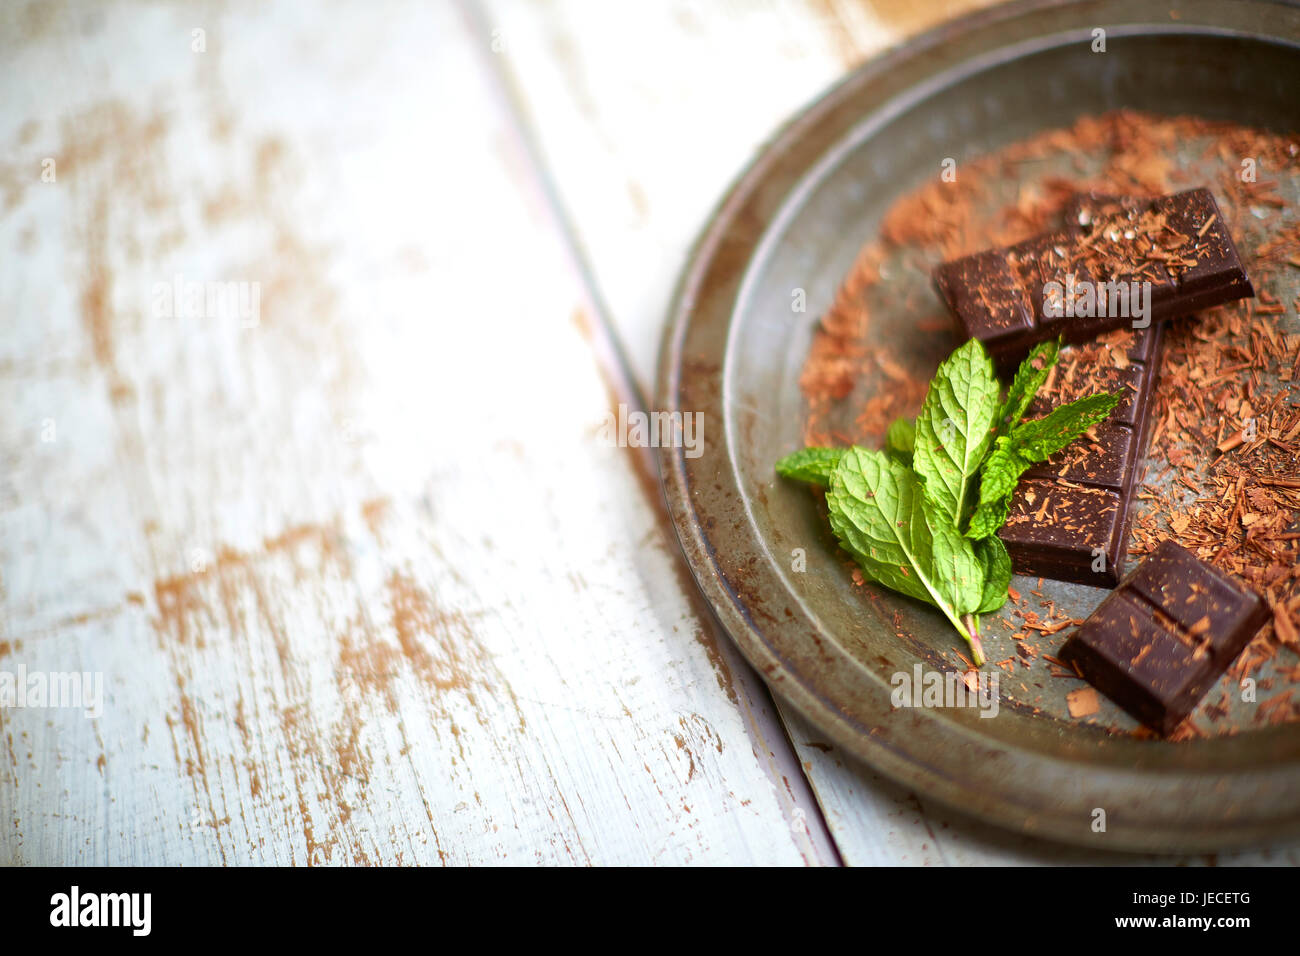 Mint and chocolate ingredients - Stock Image